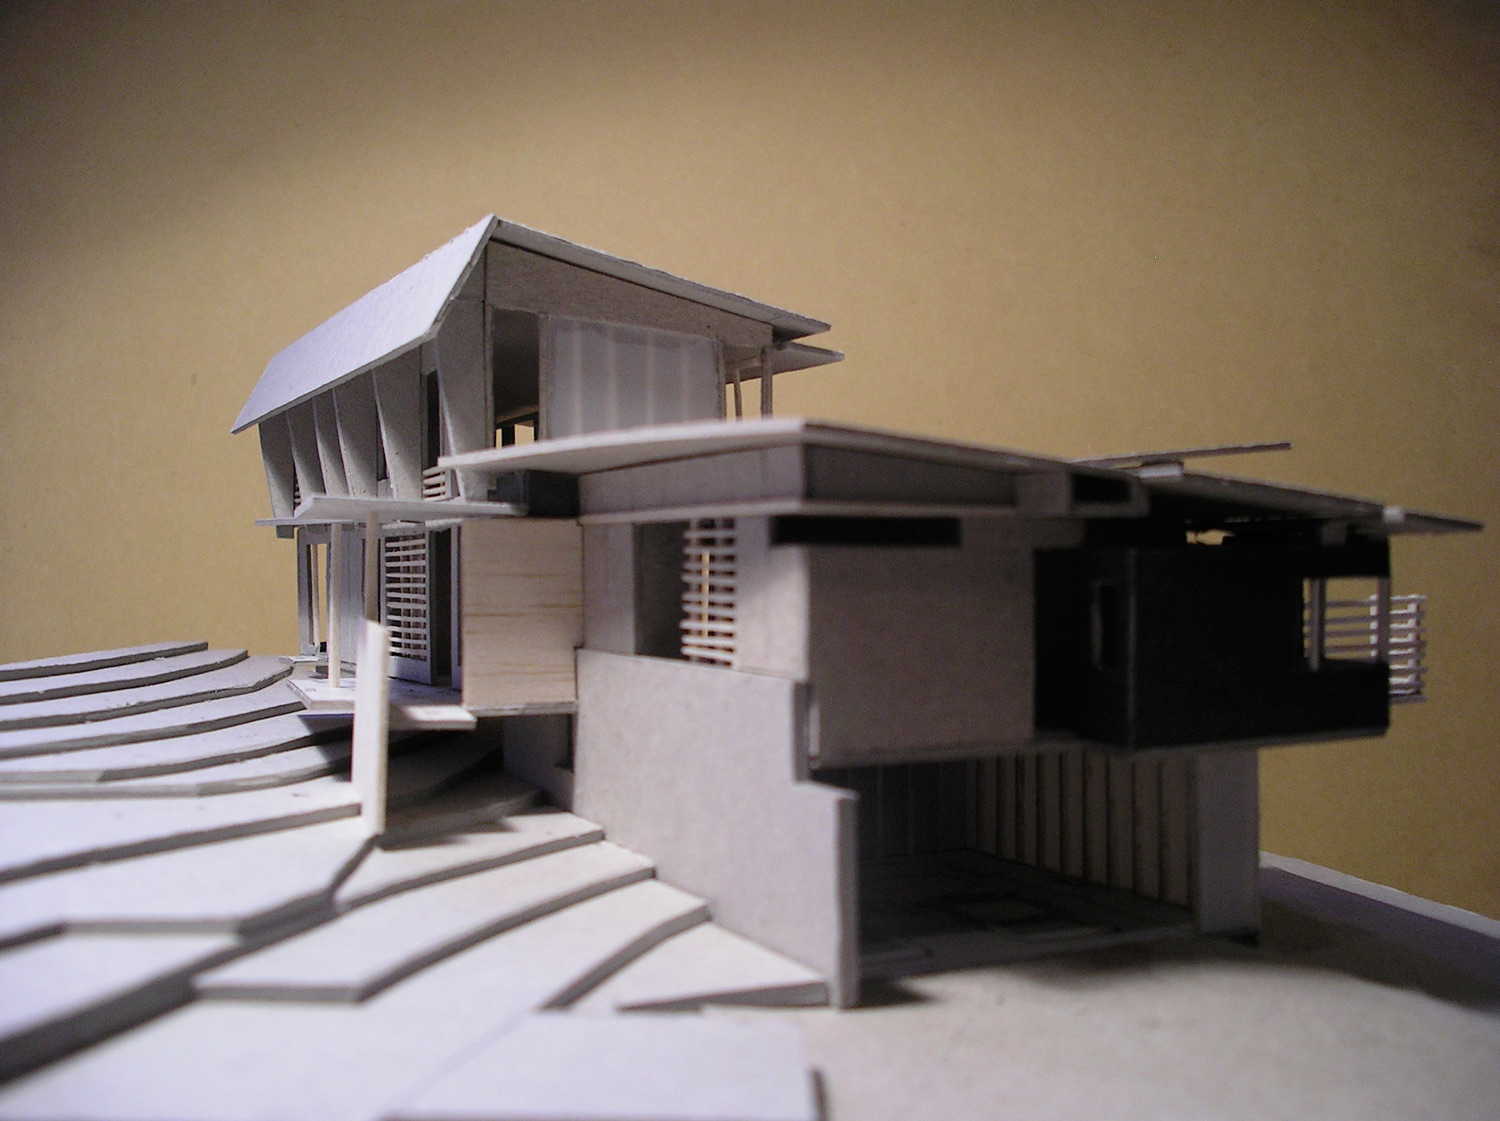 #khabarchitects #model #modelmaking #sketchmodel #conceptmodel #adelaidehouse #awardwinningarchitecture  #architect #architecturelovers #architect #architecturephotography #architectureporn #architects #architectural #architecturelover #architecturestudent #architecturalphotography #architecturedesign #architectanddesign #architecturephoto #architecturaldesign #architectureschool #architecturaldigest #architecturesketch #architecturemodel #architectura #Architecte #architecturelife #architecturegram #architectureandpeople #architecturelove #architecturedaily #buildings #adlarchigram #courtyardhouse @adelaide_photographer #pressedtin #naturaltimber #cardboard#adelaide #khabarchitects #adelaidehouse #awardwinningarchitecture